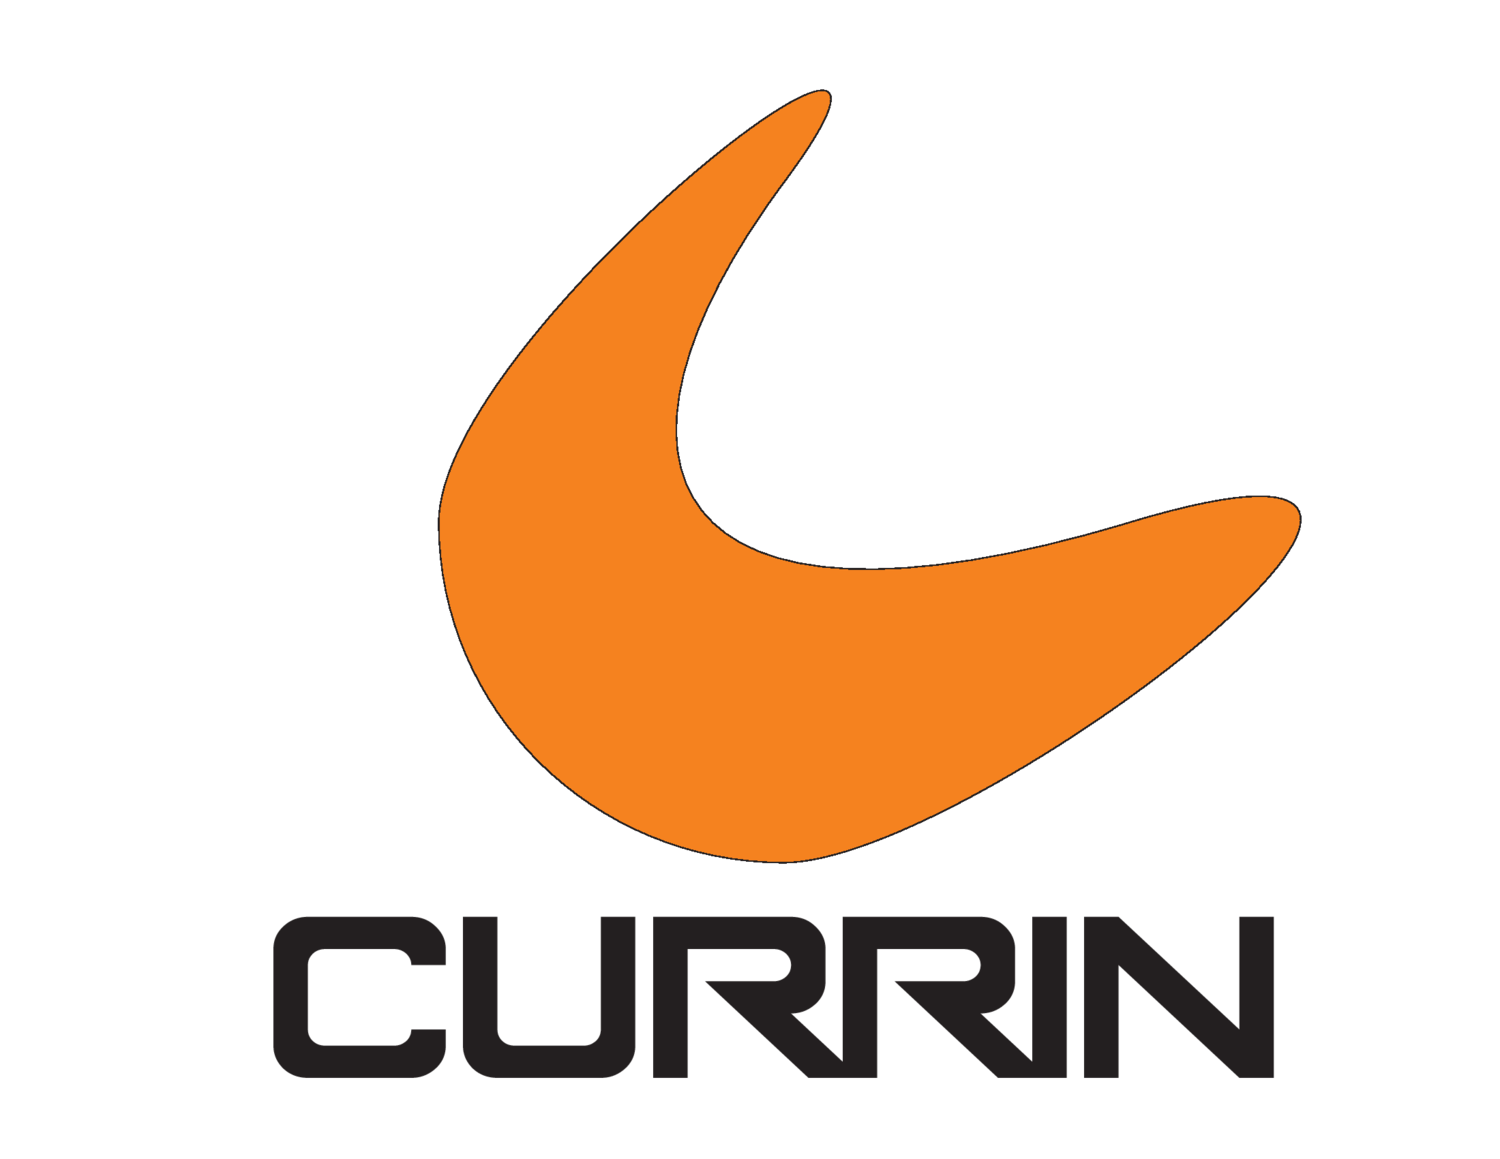 CURRIN CONSTRUCTION